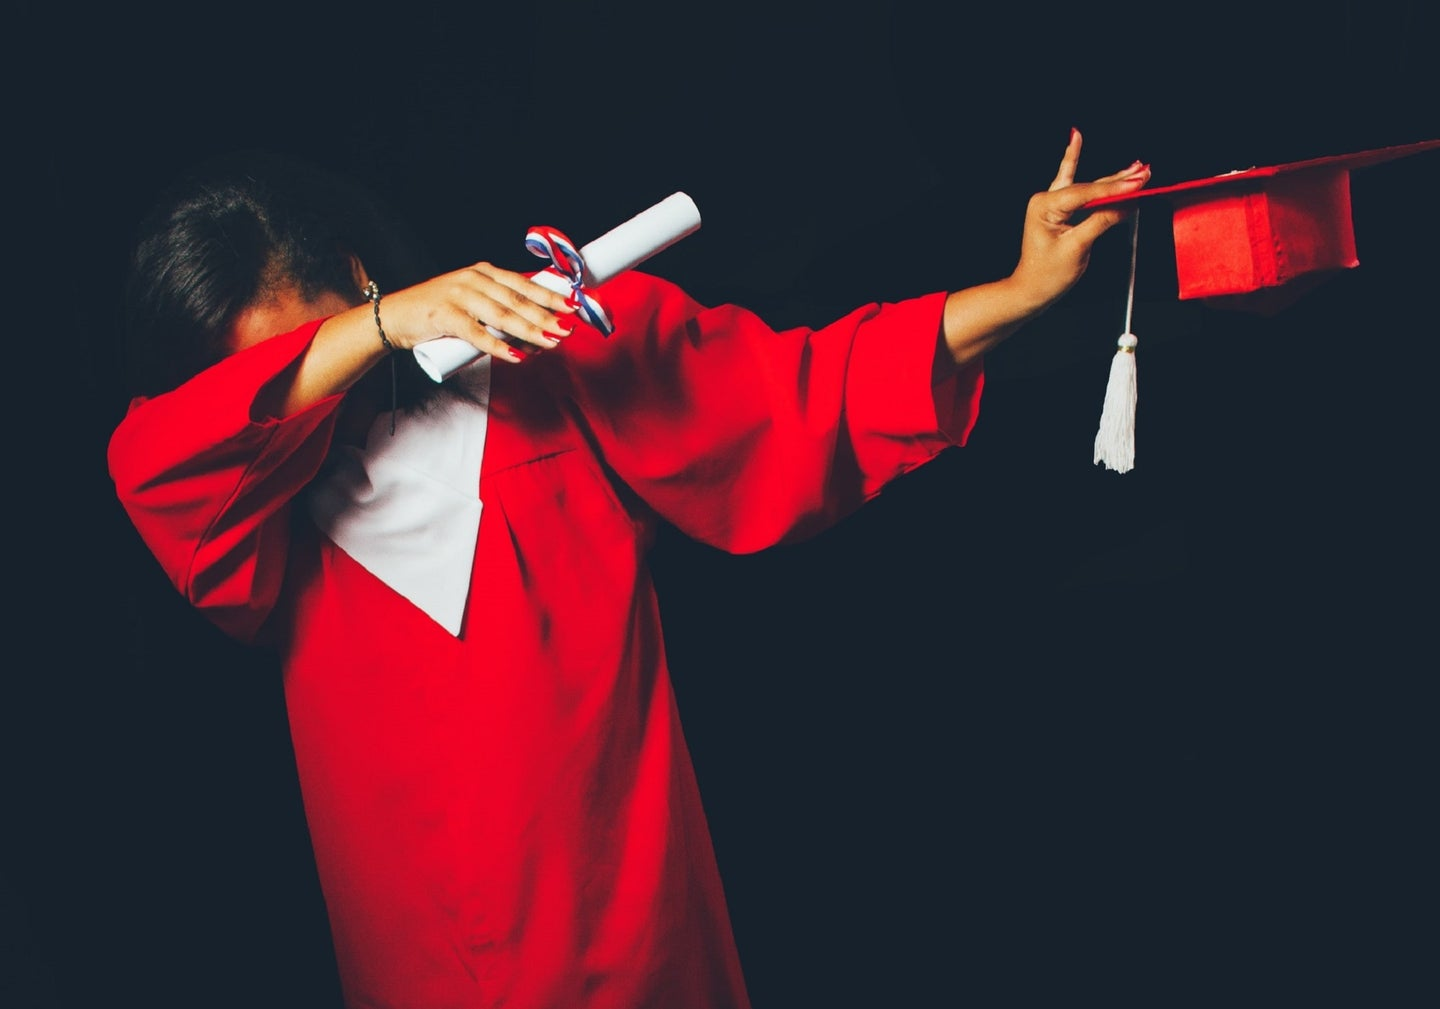 A student in a red graduation gown dabbing